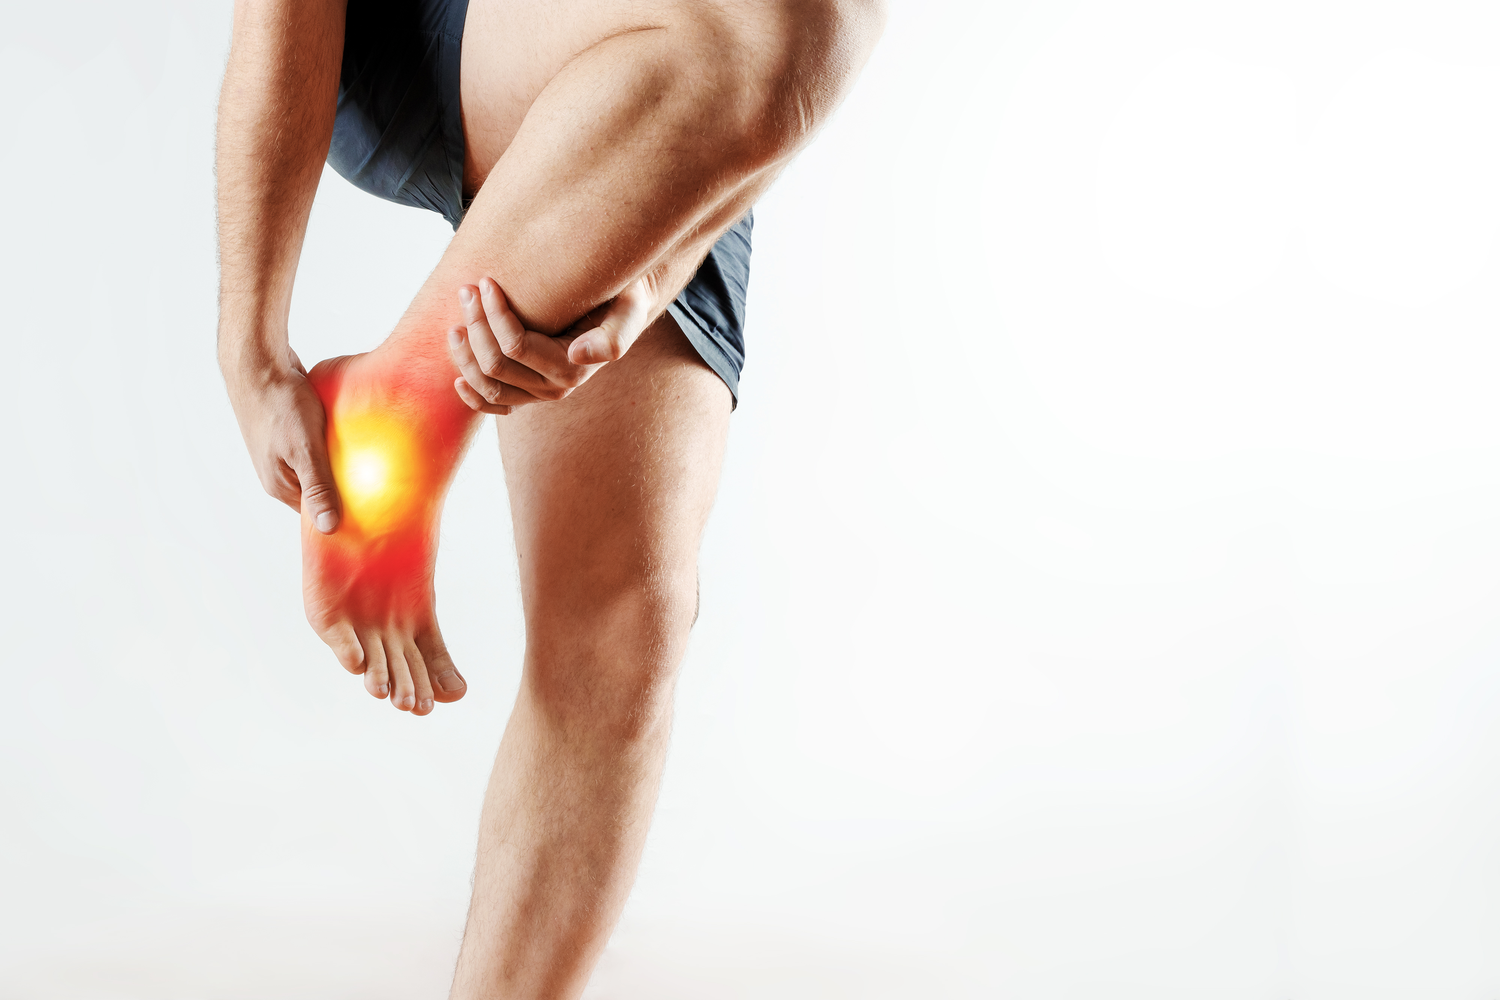 Chiropractic Care for Foot Pain and Orthotics